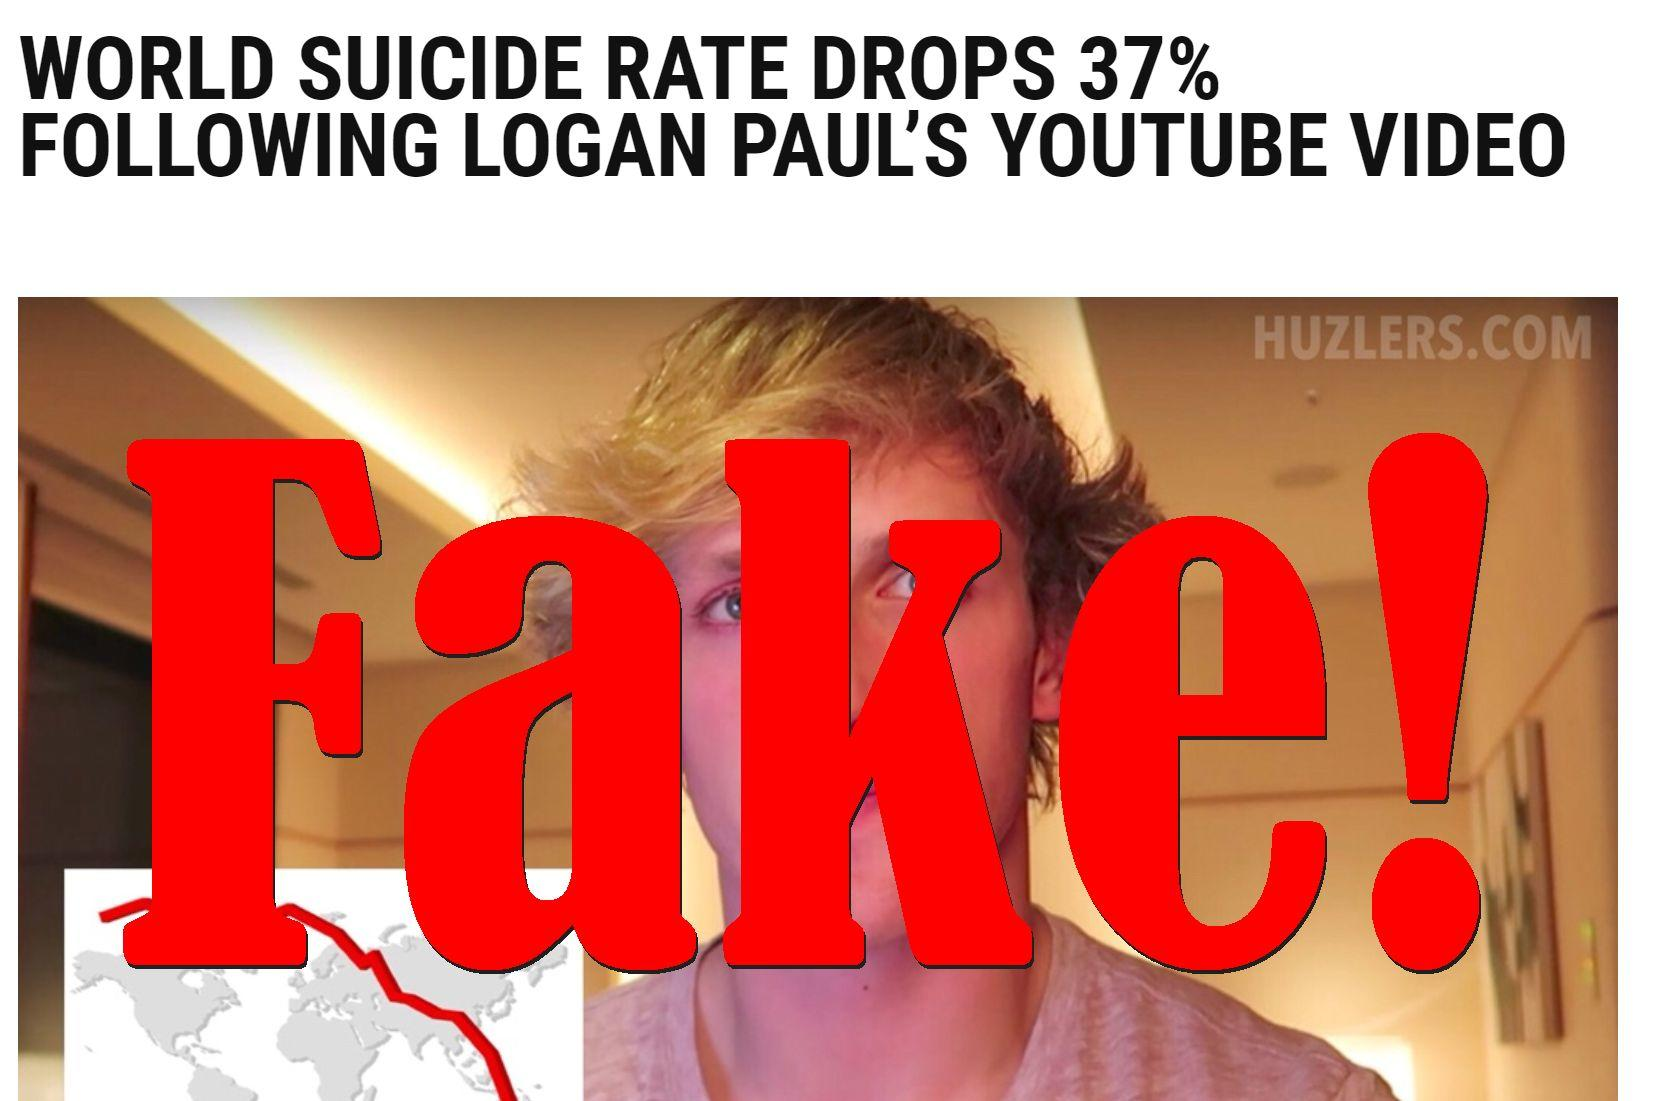 Fake News: World Suicide Rate Did NOT Drop 37% Following Logan Paul's Youtube Video